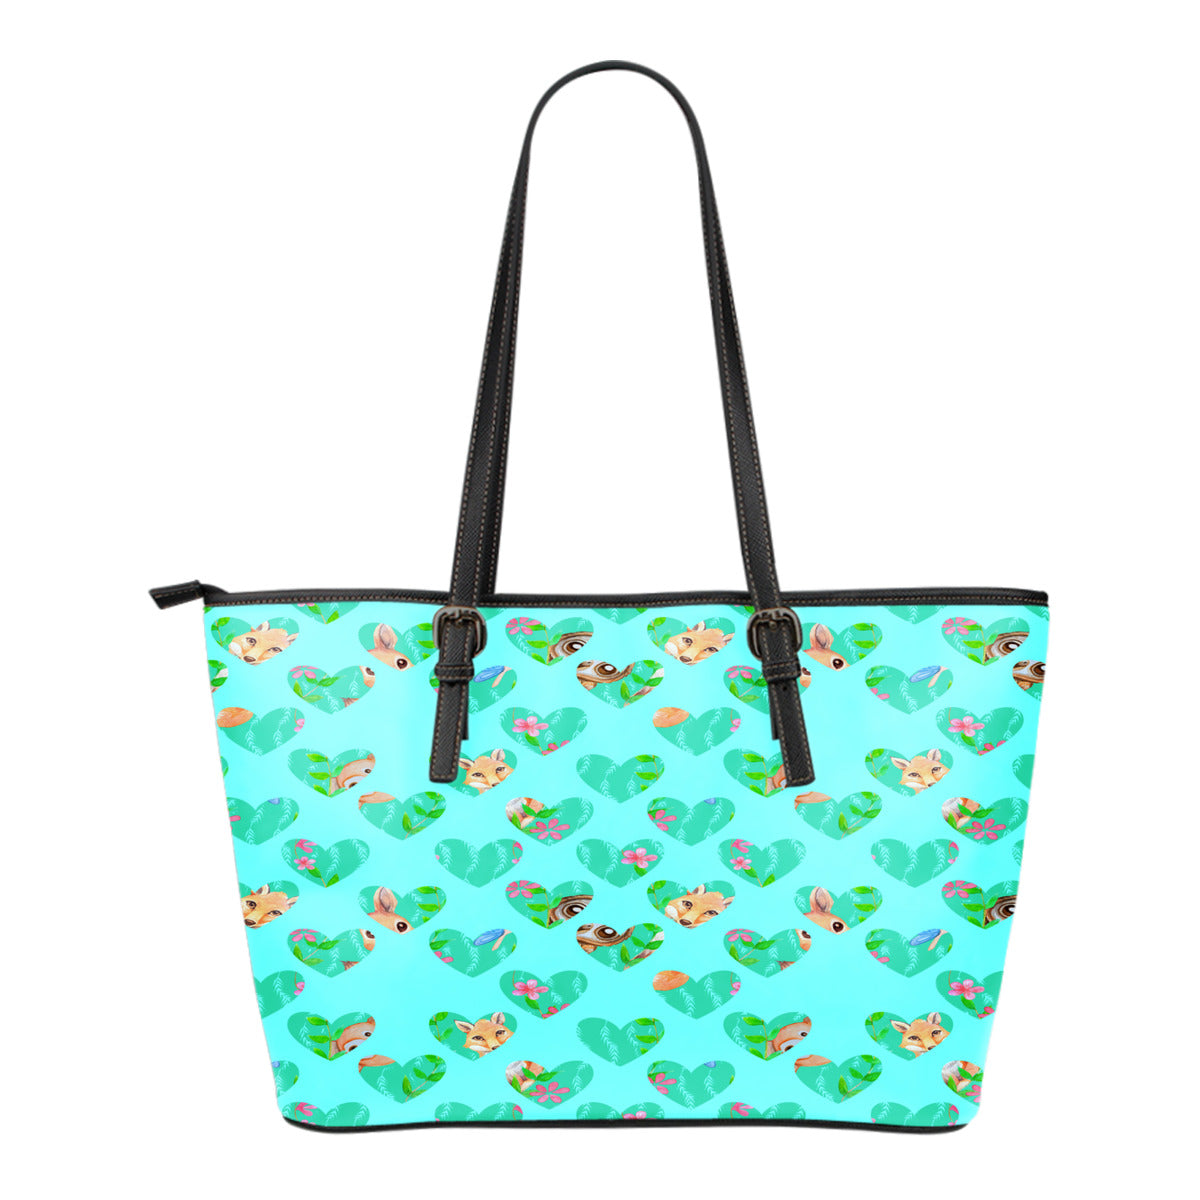 Woodland Themed Design C6 Women Small Leather Tote Bag